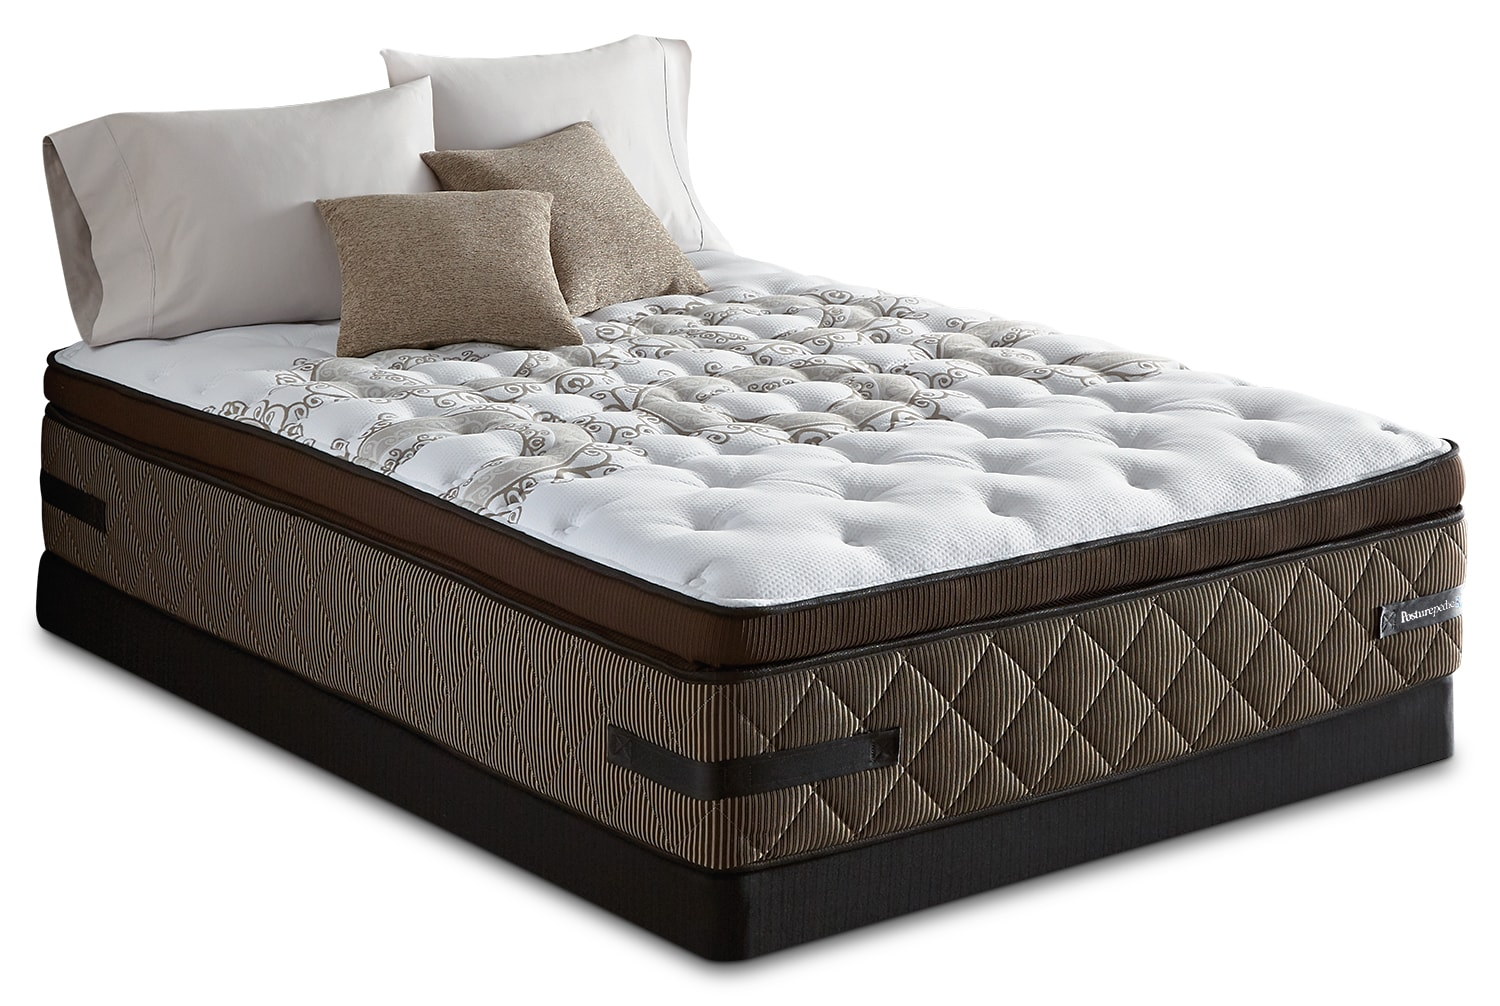 Mattresses and Bedding - Sealy Crown Jewel Sunsera Euro Pillow-Top Firm King Mattress Set